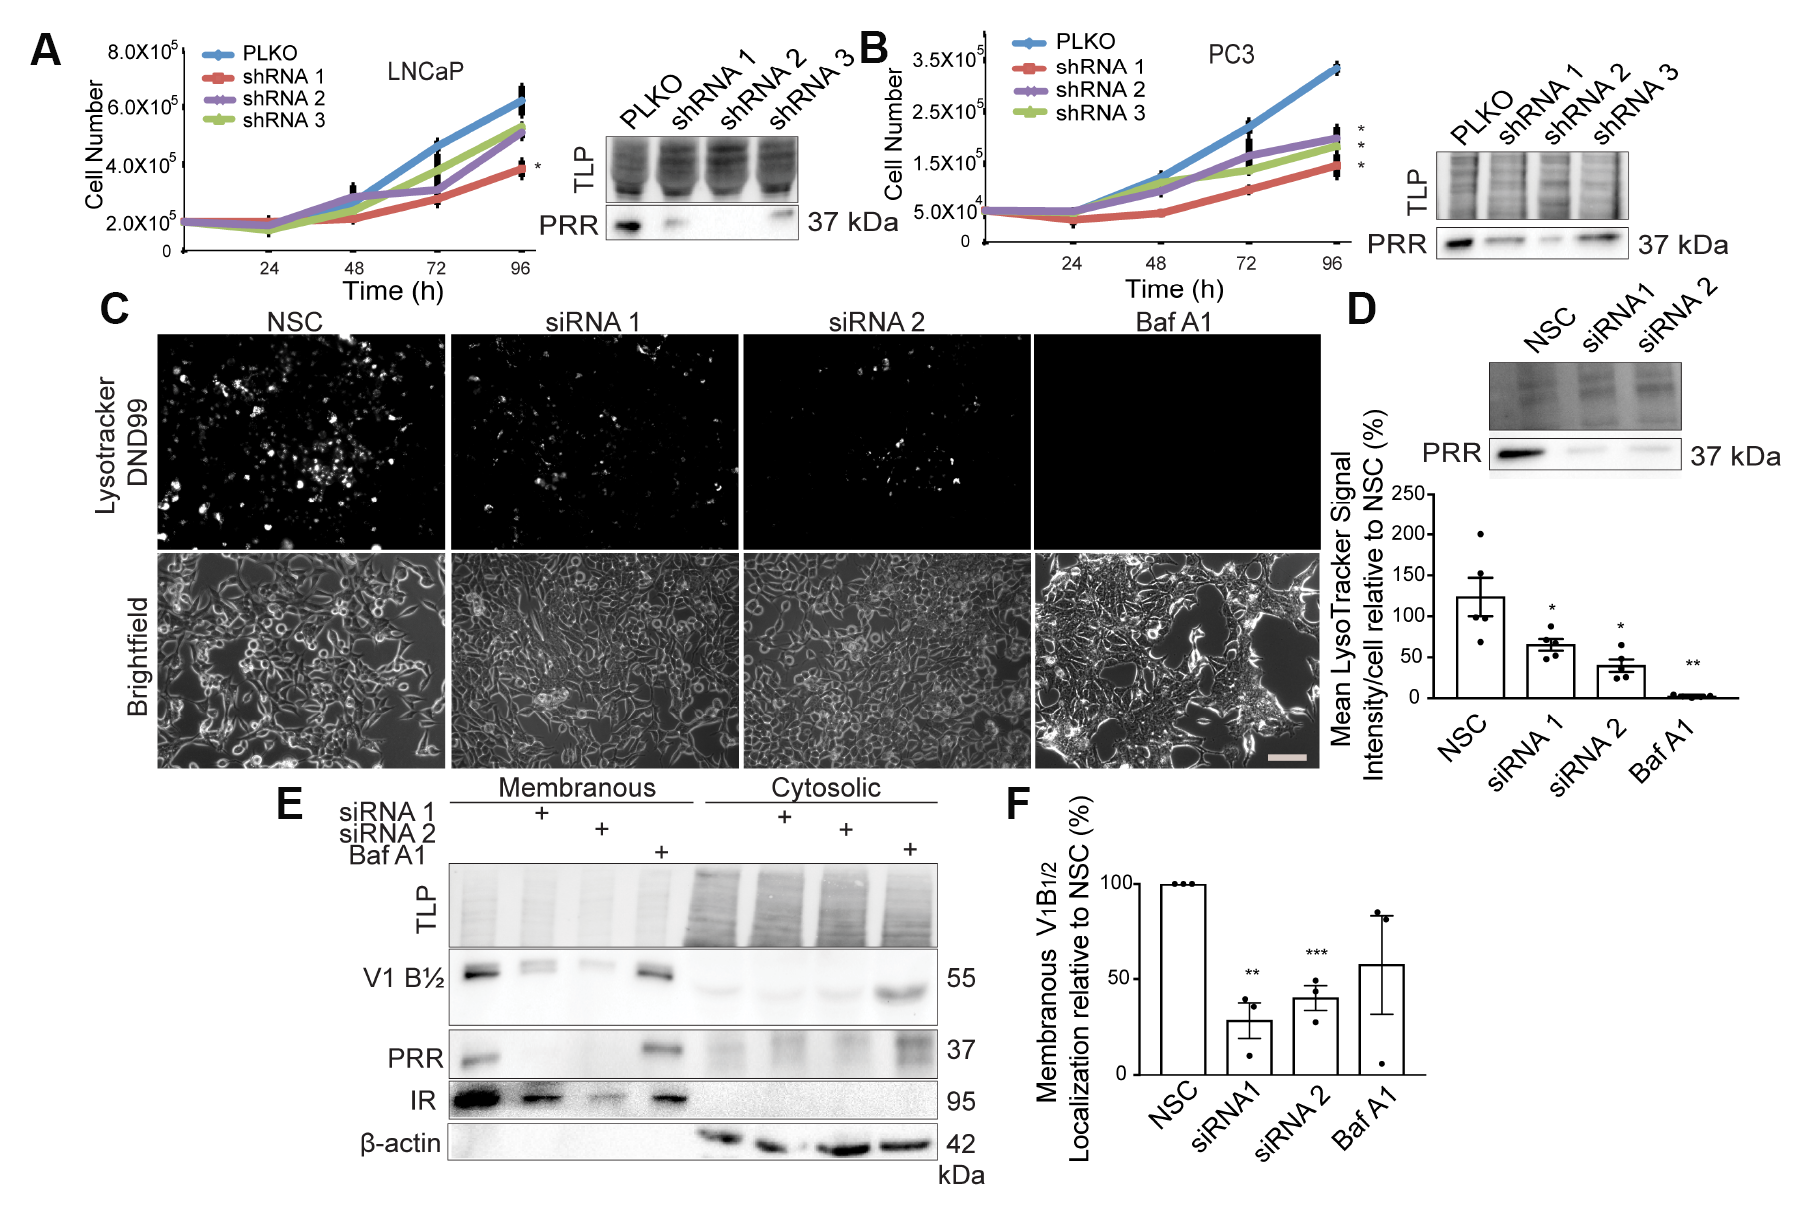 Downregulation of PRR results in a decrease in cell growth and V-ATPase activity.